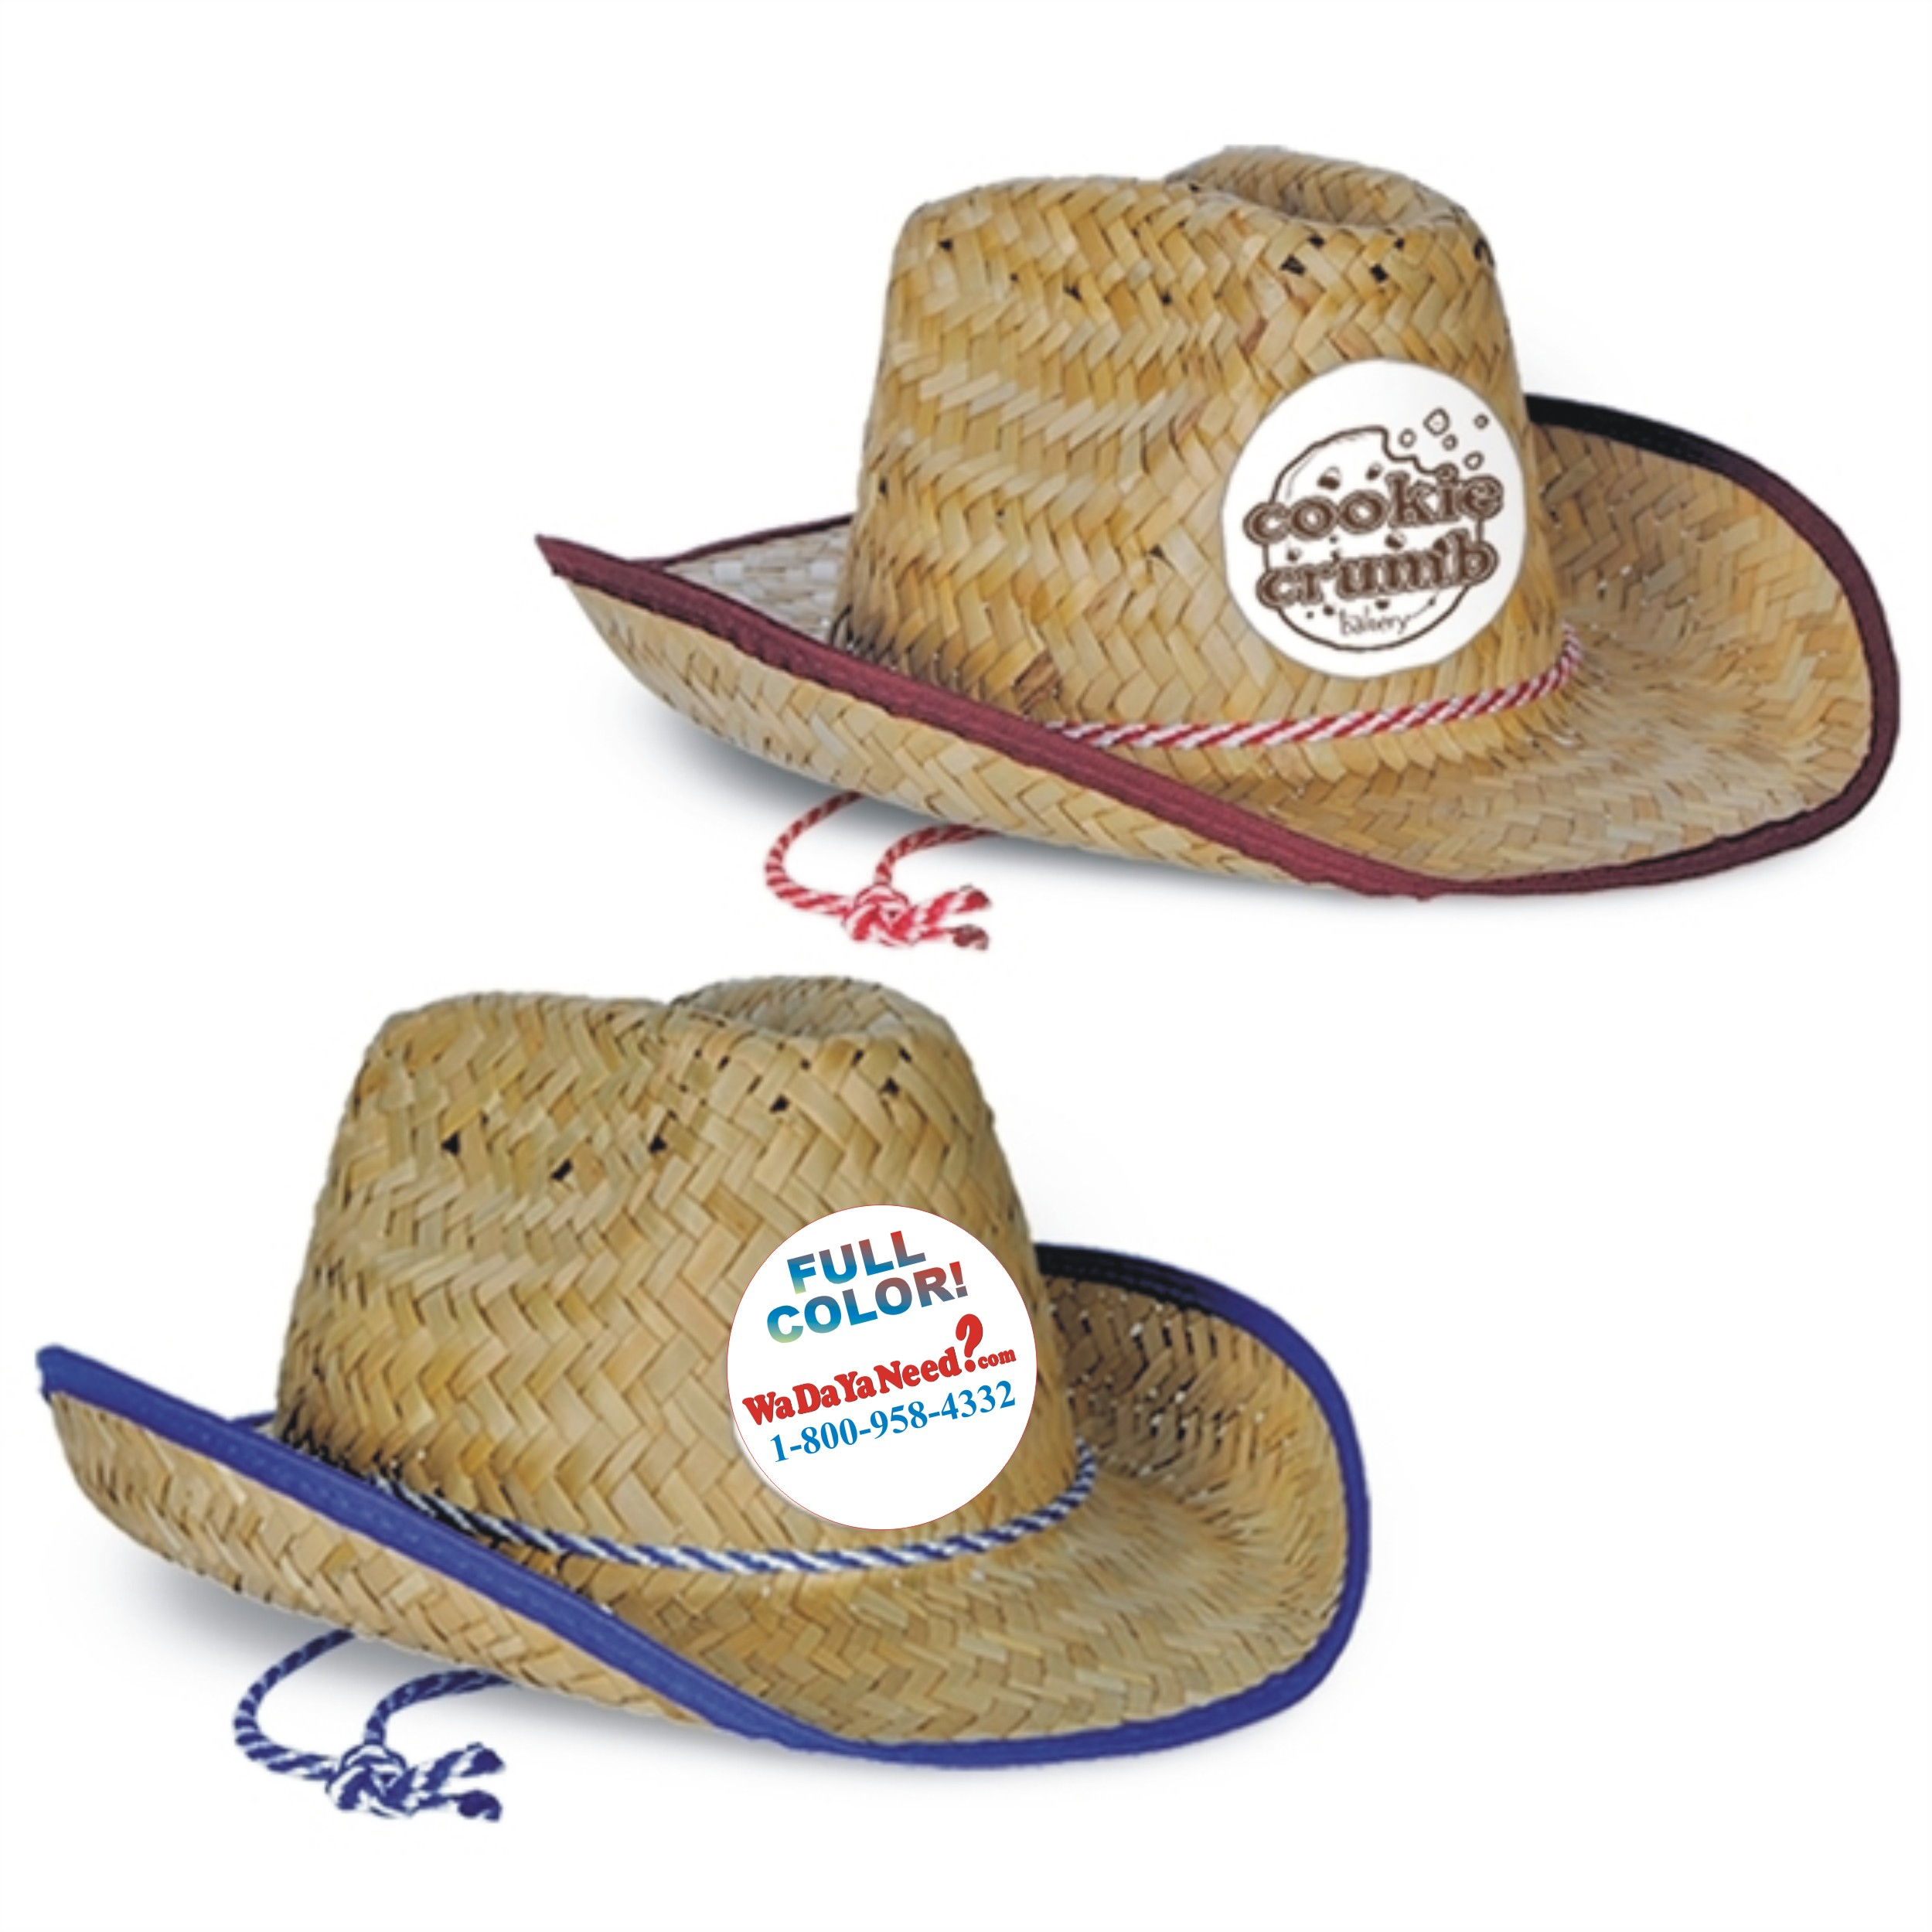 ae636633 Full Color Imprint Cowboy Hats - Custom Imprinted Promotional Items ...